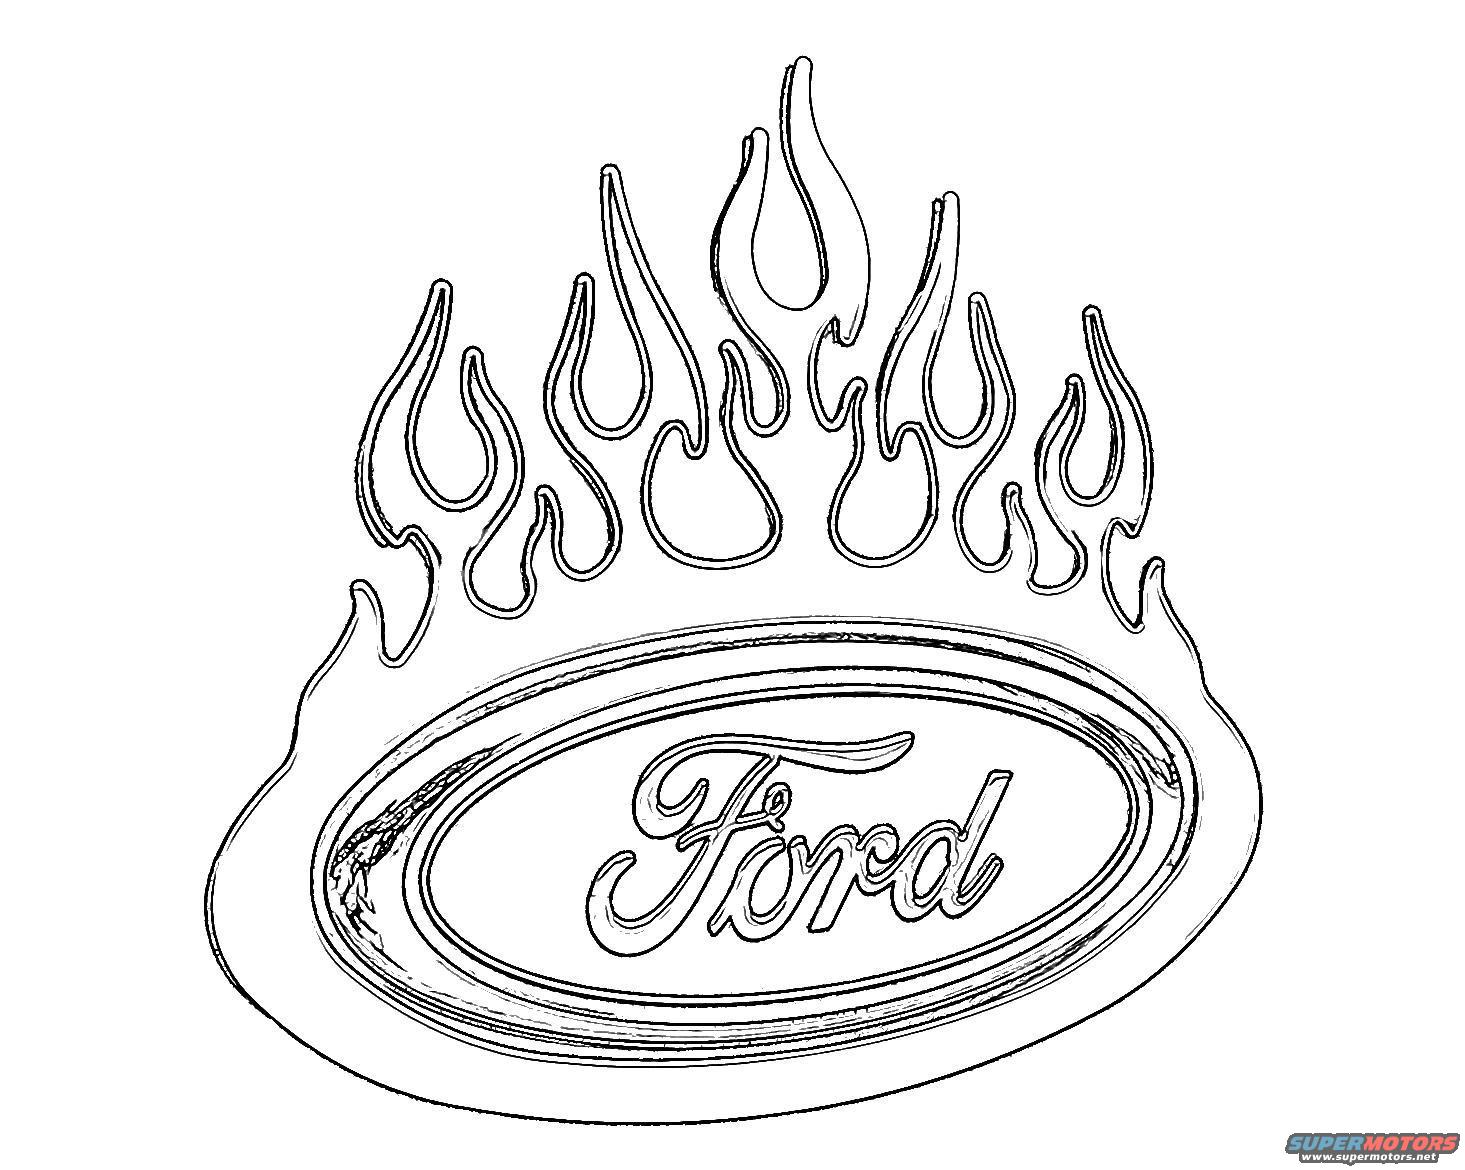 Ford trucks coloring pages download and print for free